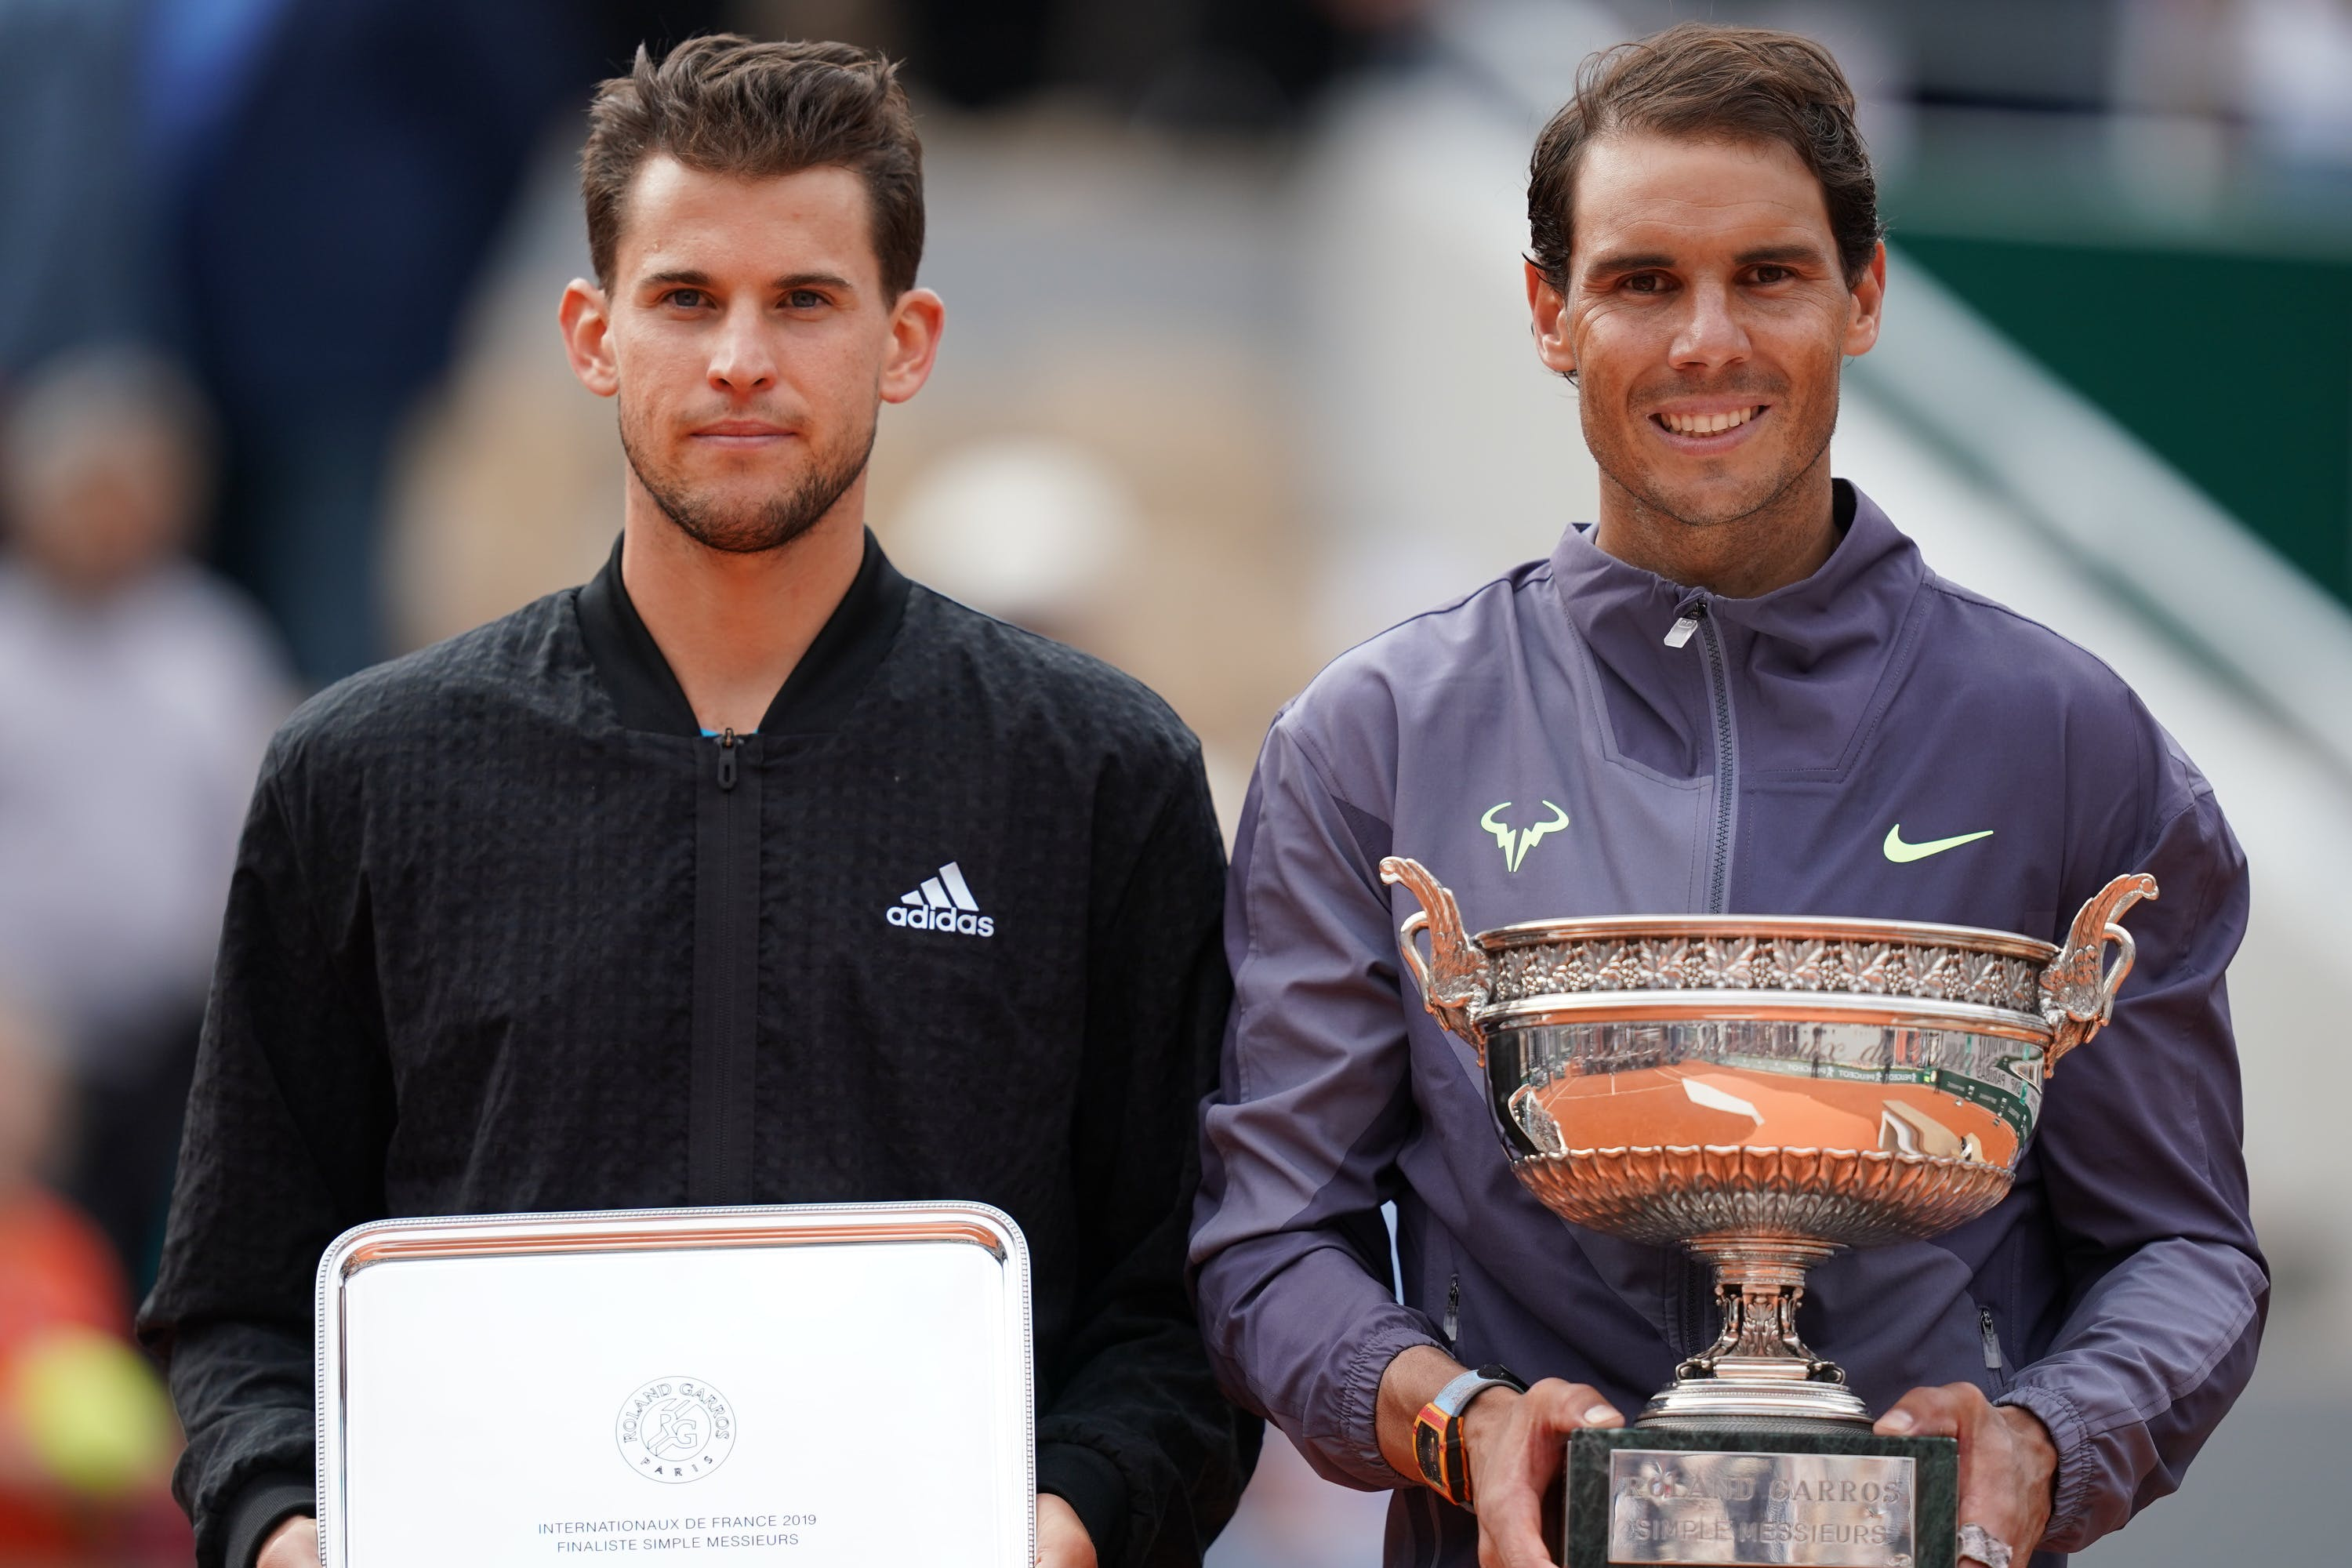 Dominic Thiem & Rafael Nadal during the trophy ceremony at Roland-Garros 2019